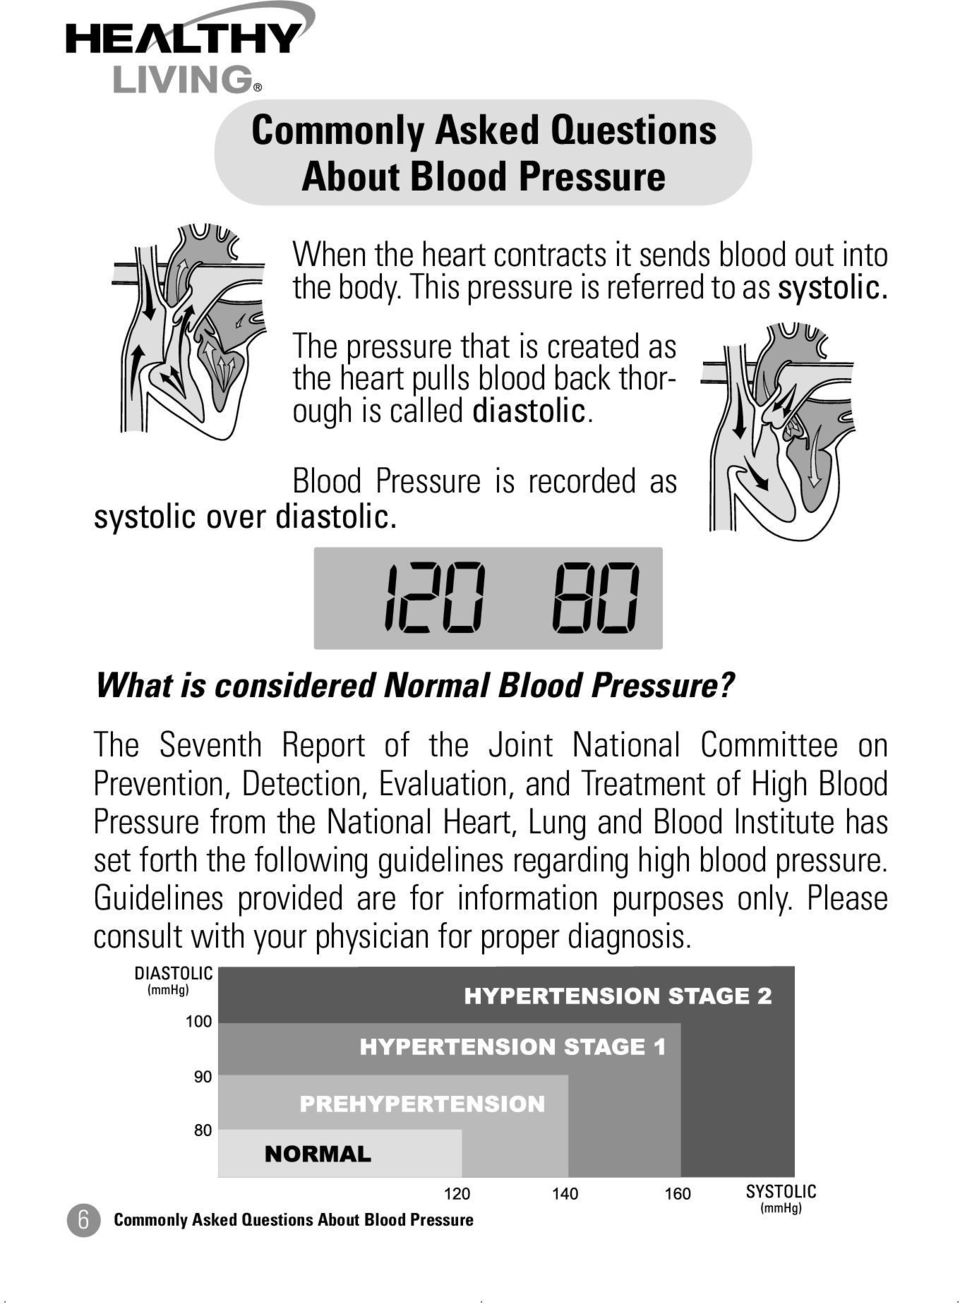 The Seventh Report of the Joint National Committee on Prevention, Detection, Evaluation, and Treatment of High Blood Pressure from the National Heart, Lung and Blood Institute has set